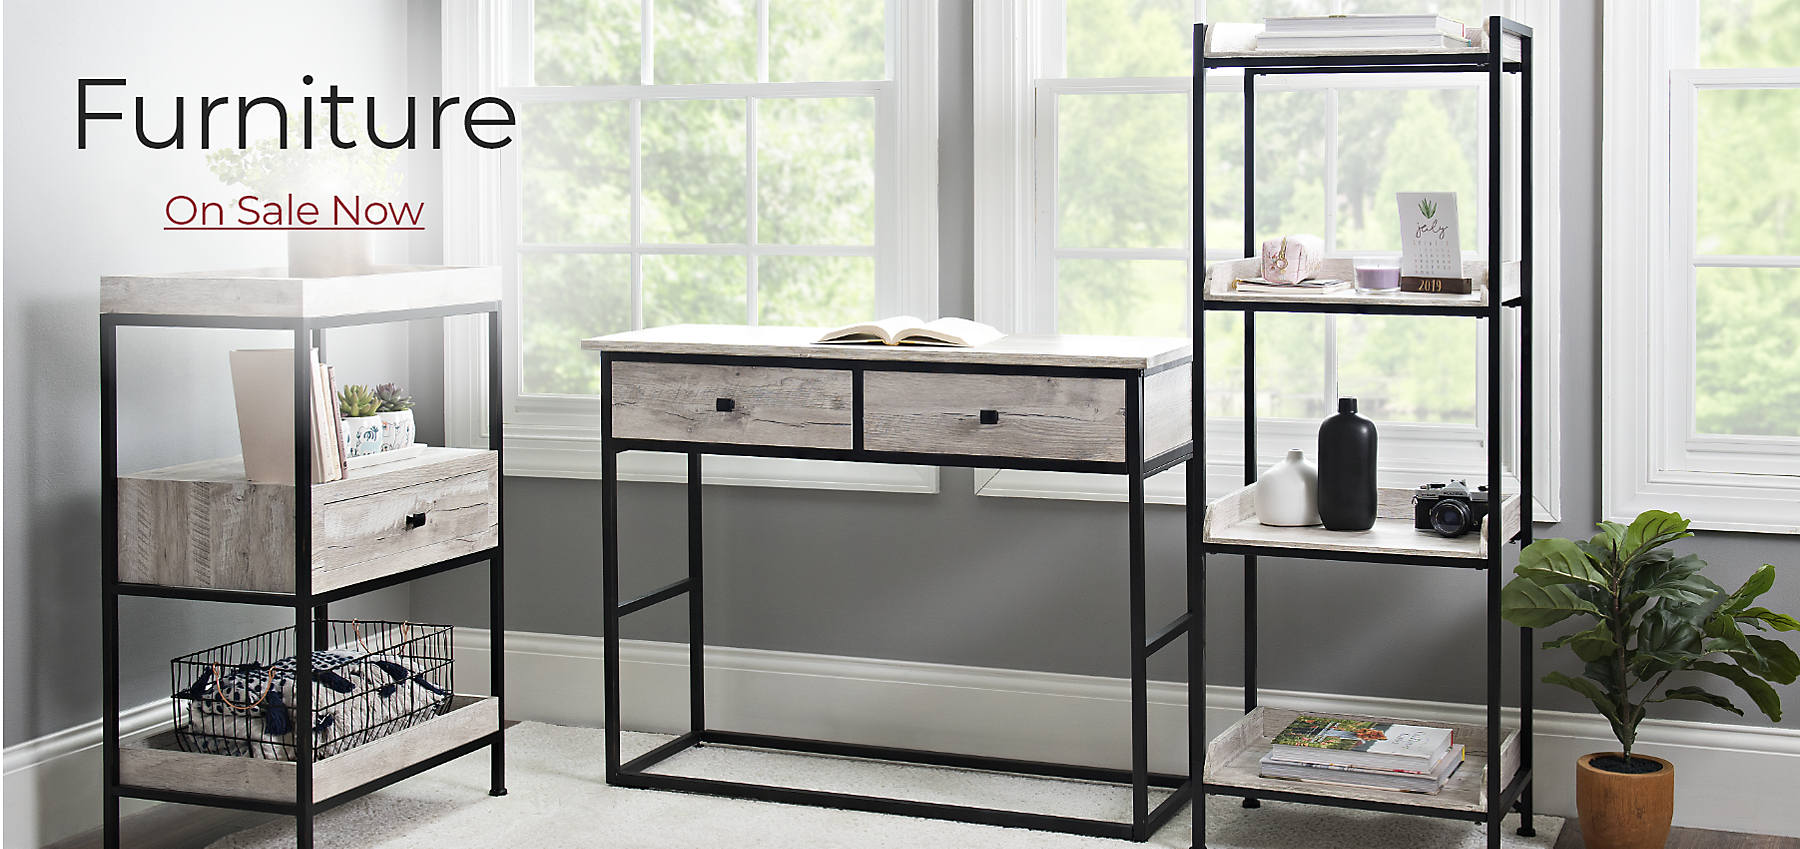 Furniture On Sale Now